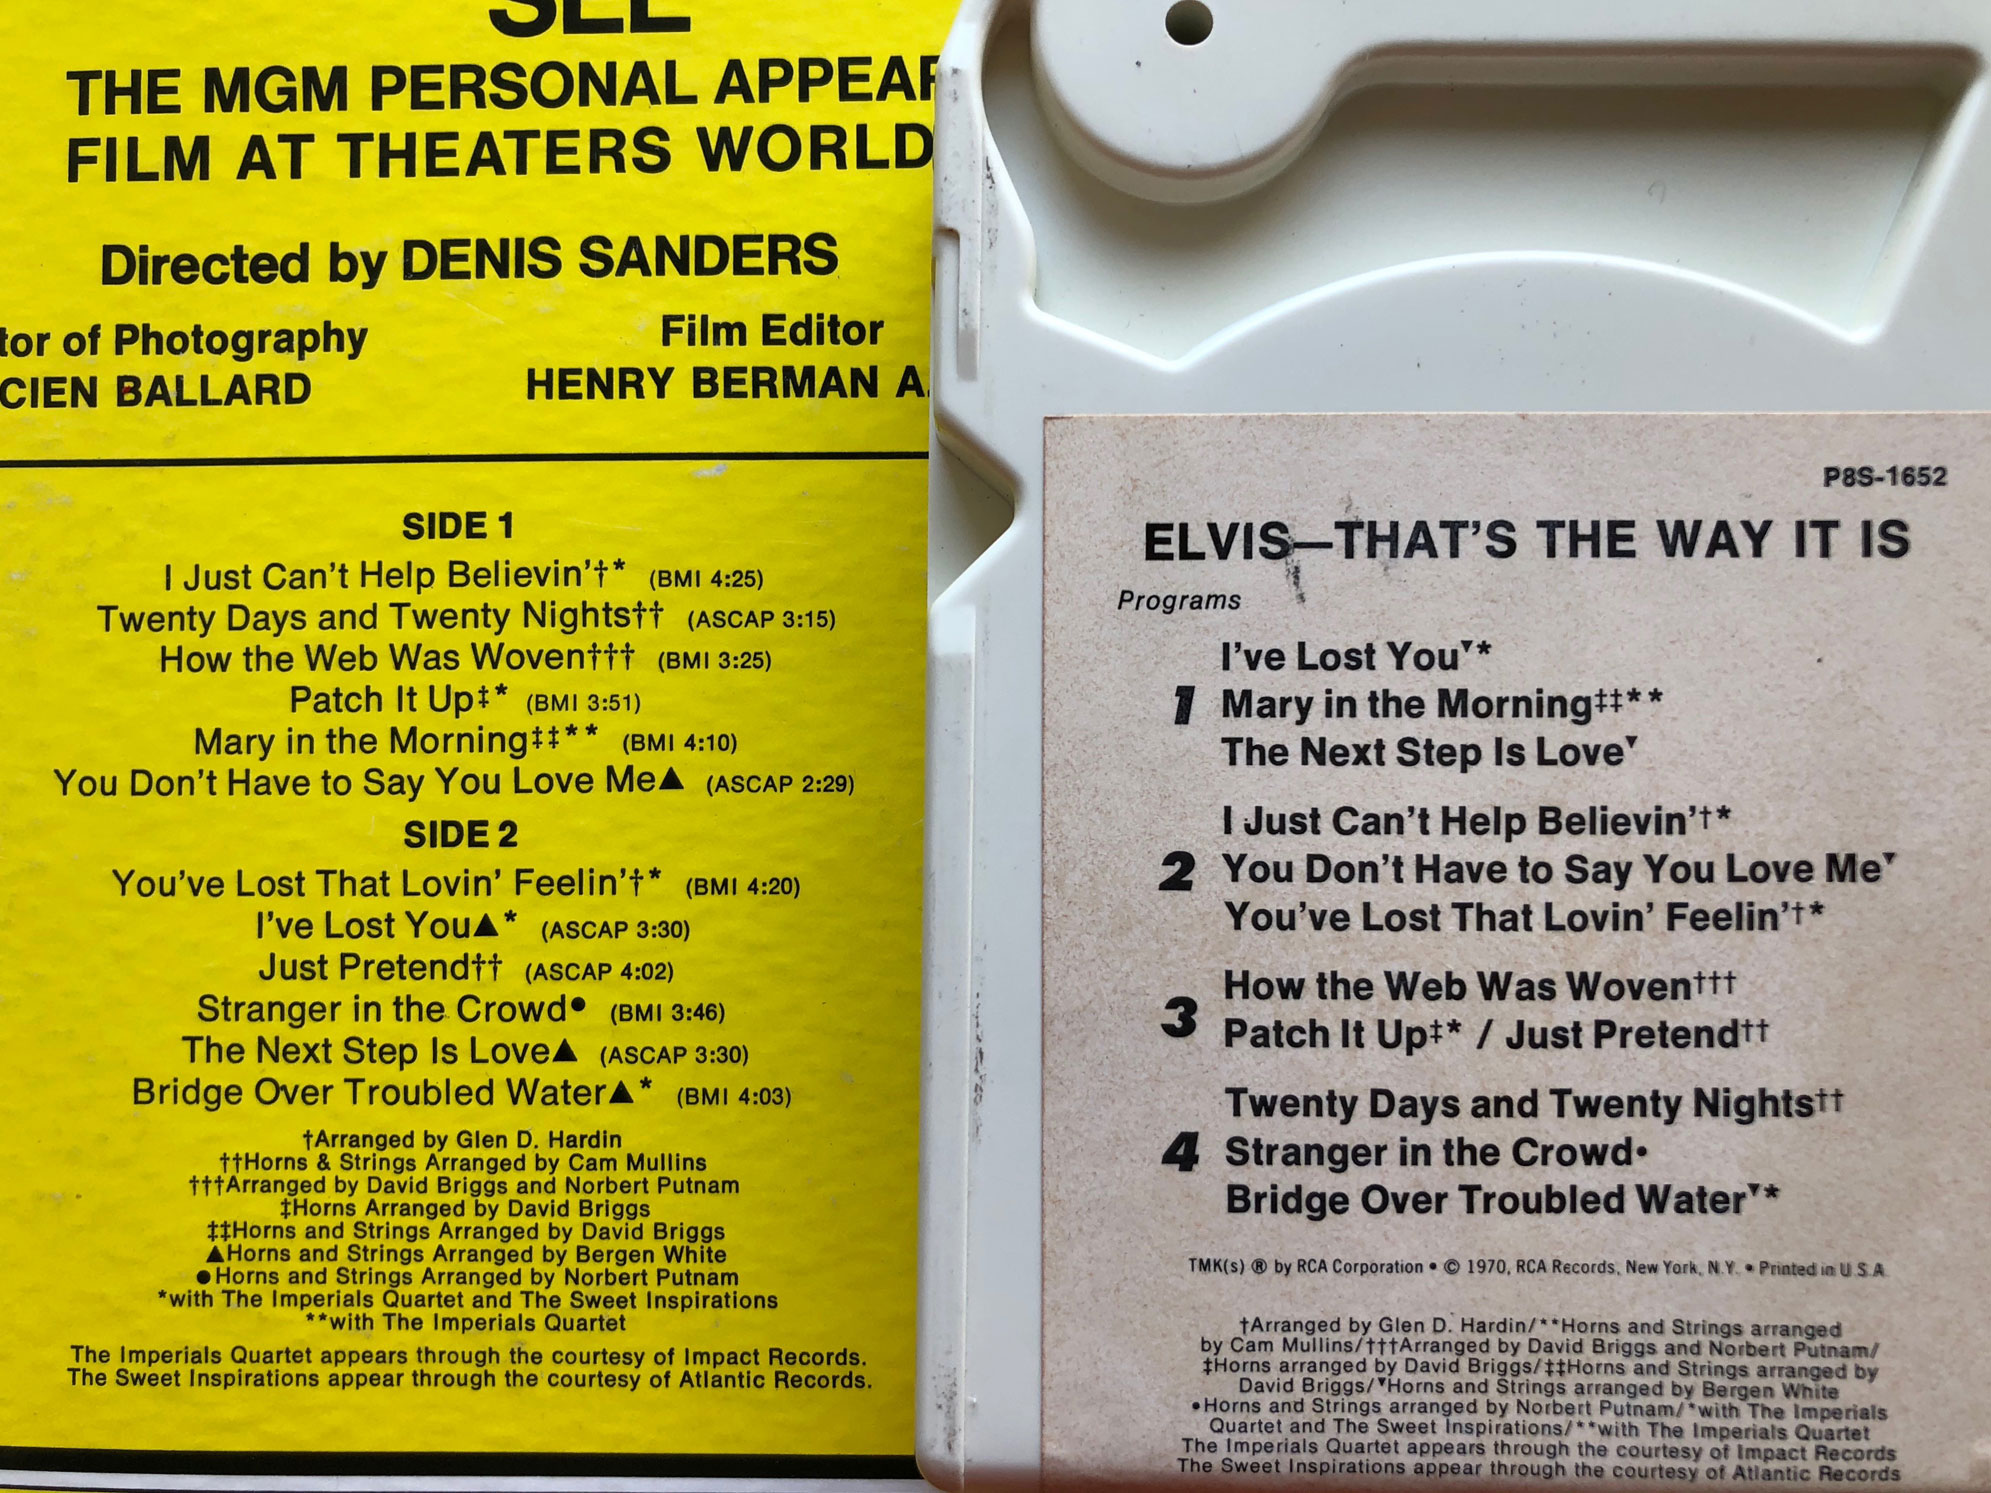 8-Trackin': Elvis Presley, 'That's The Way It Is' (1970